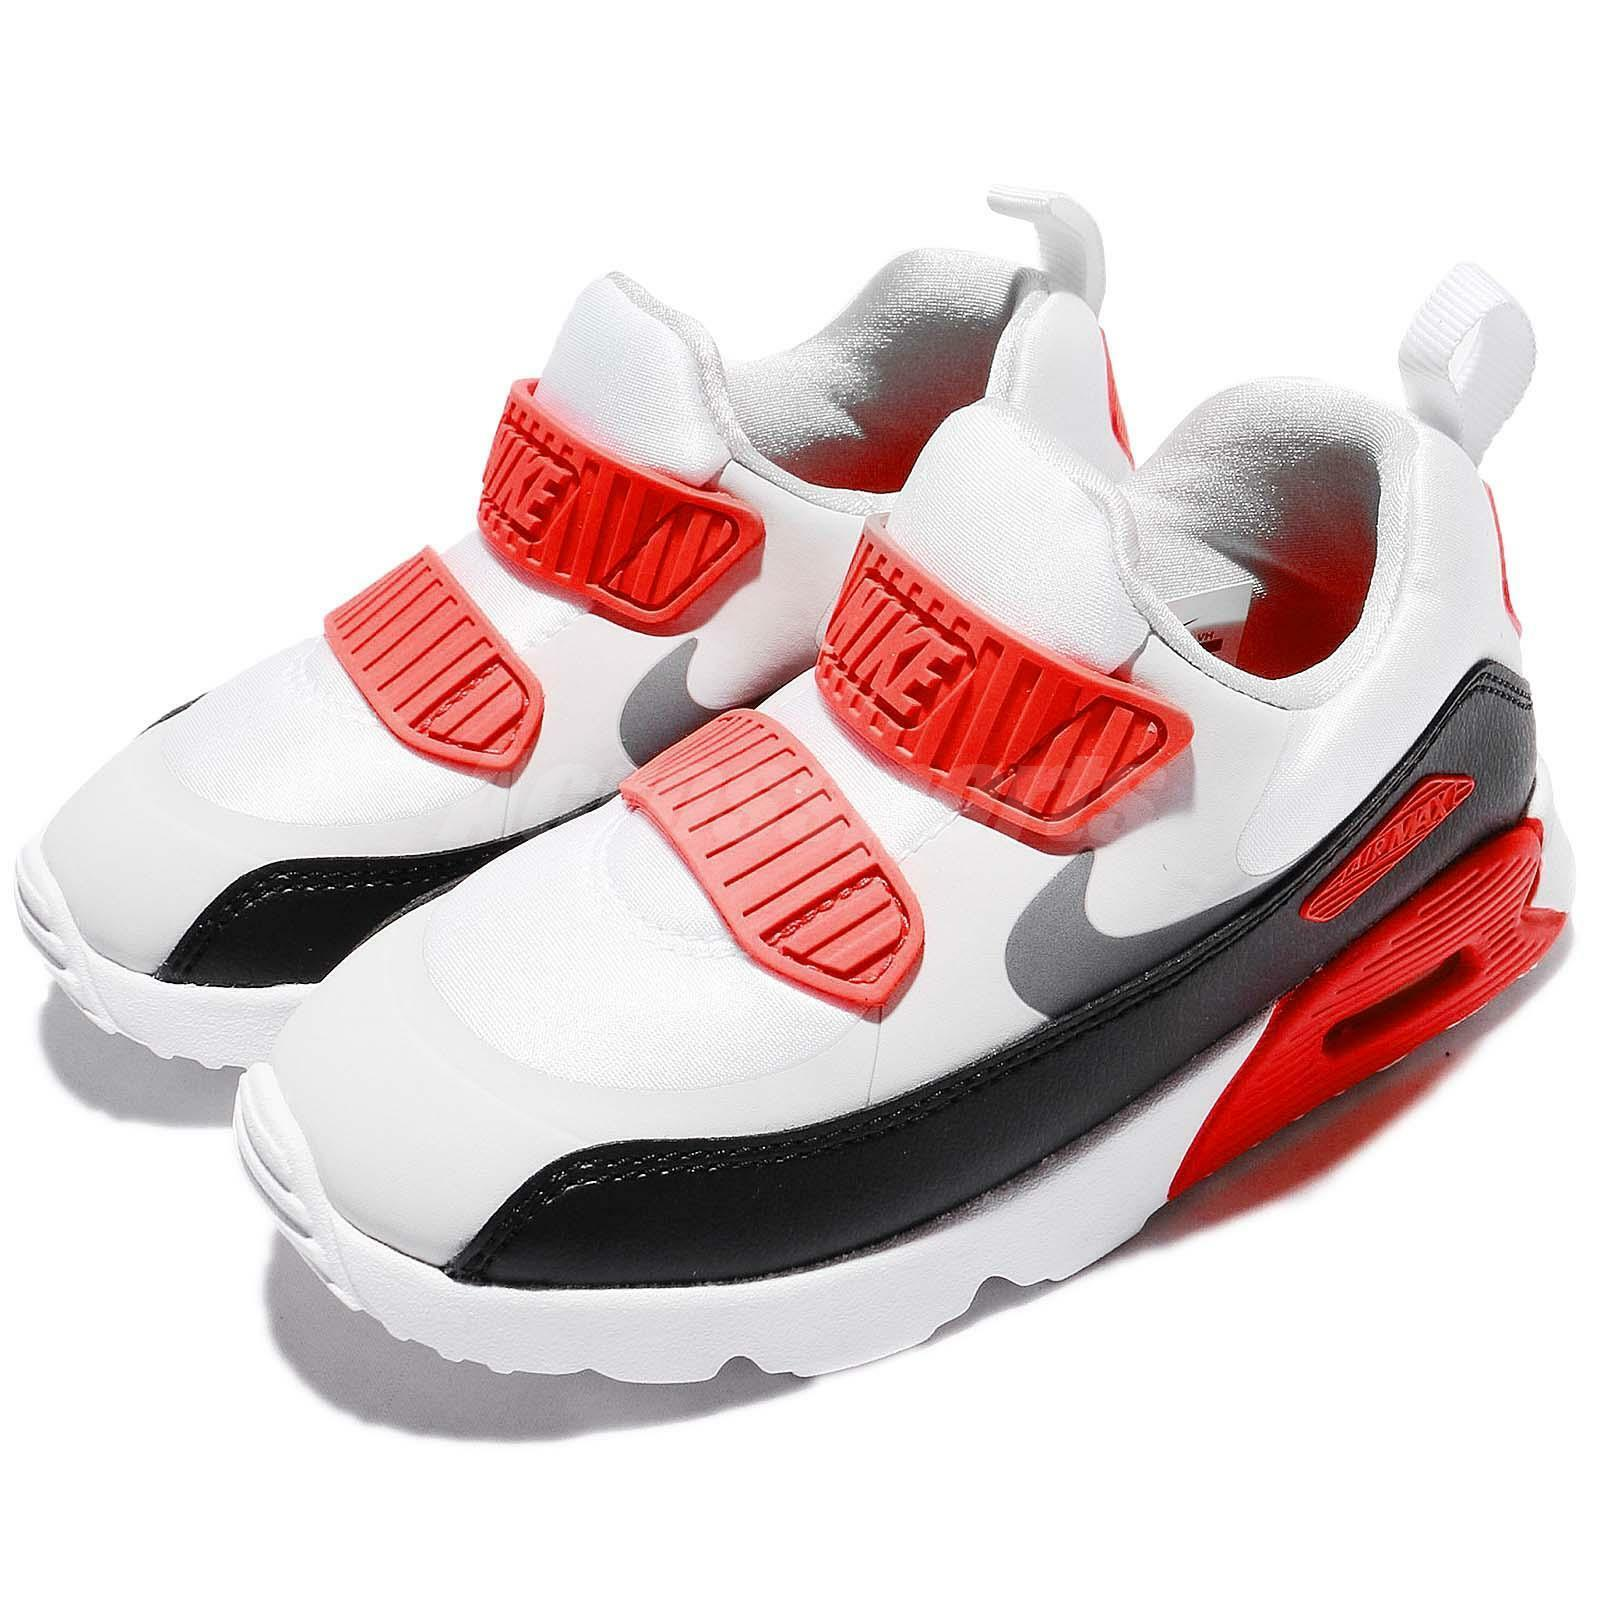 Nike Air Max Tiny 90 TD OG Neutral Grey Toddler Infant Baby Shoes